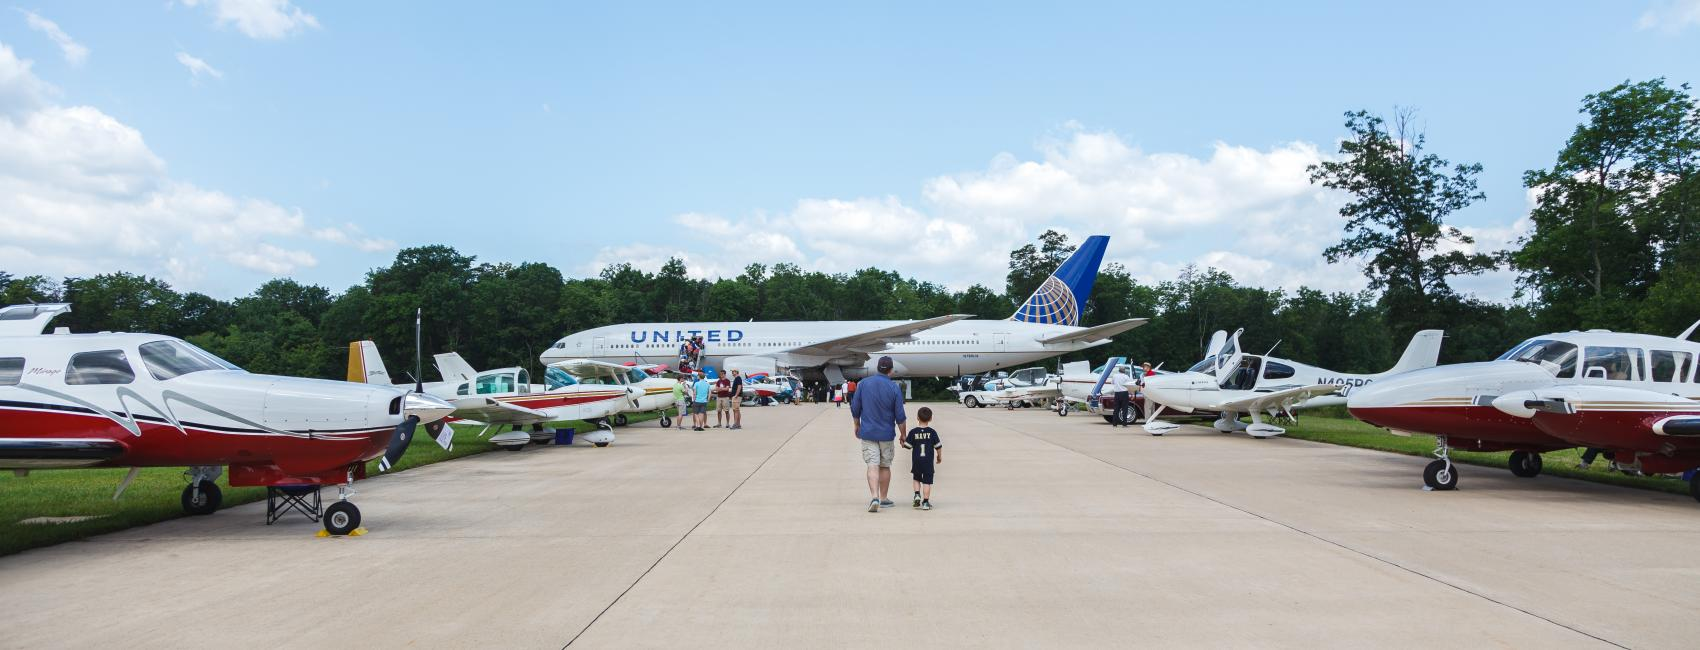 Aircraft at Become a Pilot Day 2014